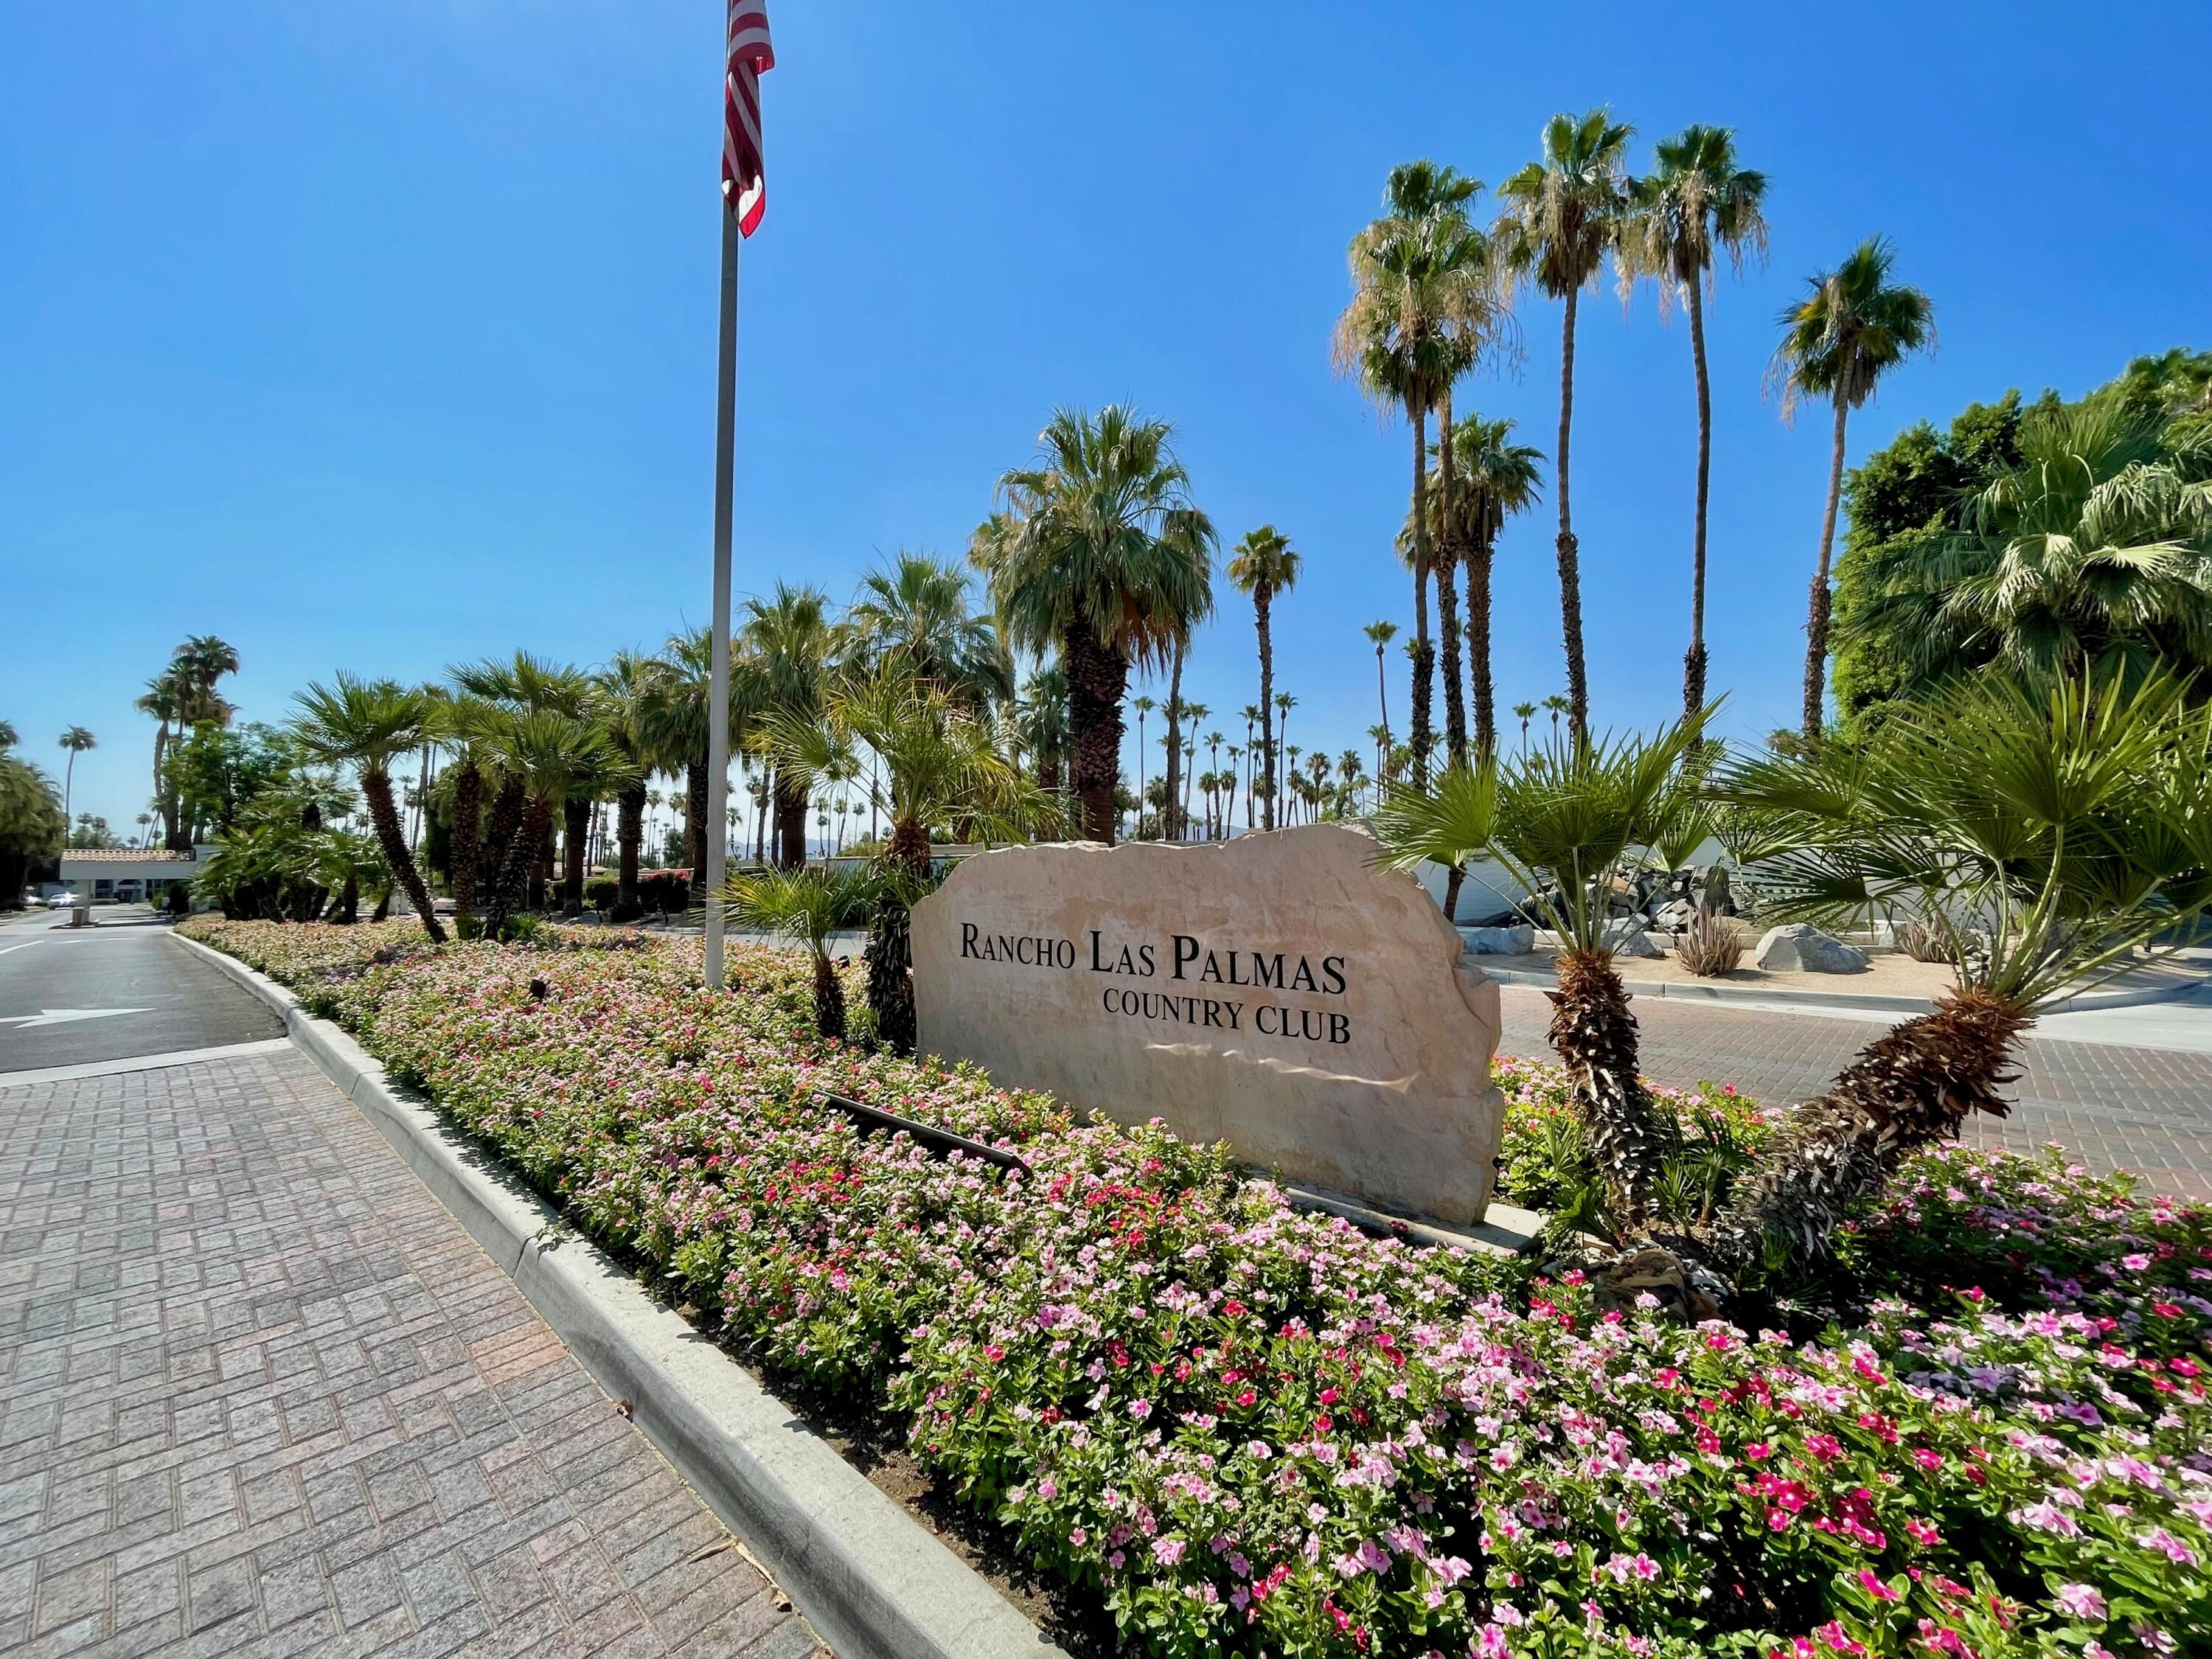 Great opportunity to own in desirable Rancho Las Palmas! This condo is in a great location with large patio facing east on a double fairway with lots of sunshine perfect in the winter for those morning cups of coffee. Condo is offered furnished and features 3 Bed and 2 Baths with the 3rd bedroom currently used as an office. This condo is light and bright featuring tile and carpet flooring, views from the living room and an attached garage. Rancho Las Palmas features many amenities with several pools/spas, fitness center, 27 hole golf course and tennis courts. Located across the street from ''The River'' offering shopping, restaurants, and much more! You don't want to miss this one.